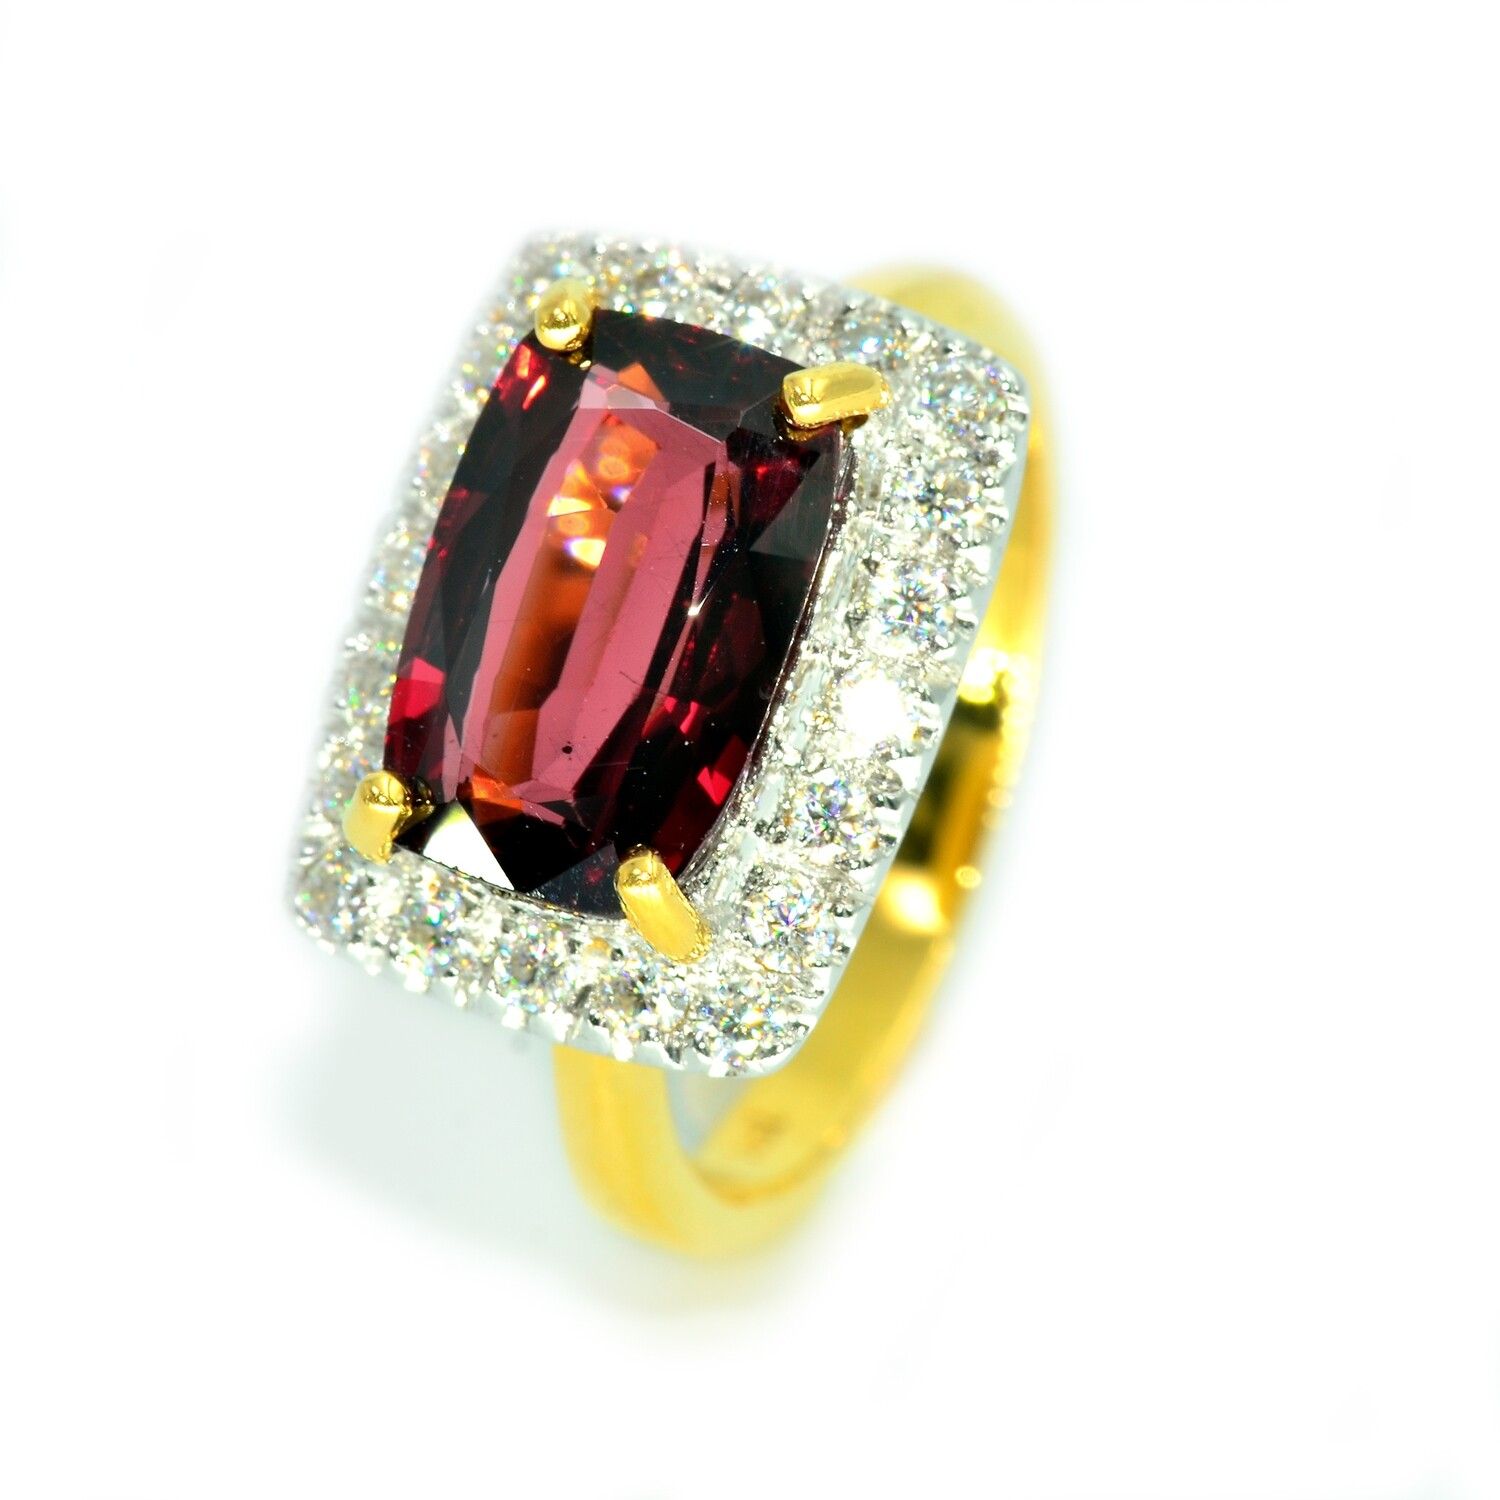 Natural Red Rhodolite Ring 18K. Engagement Ring. Anniversary Gift.